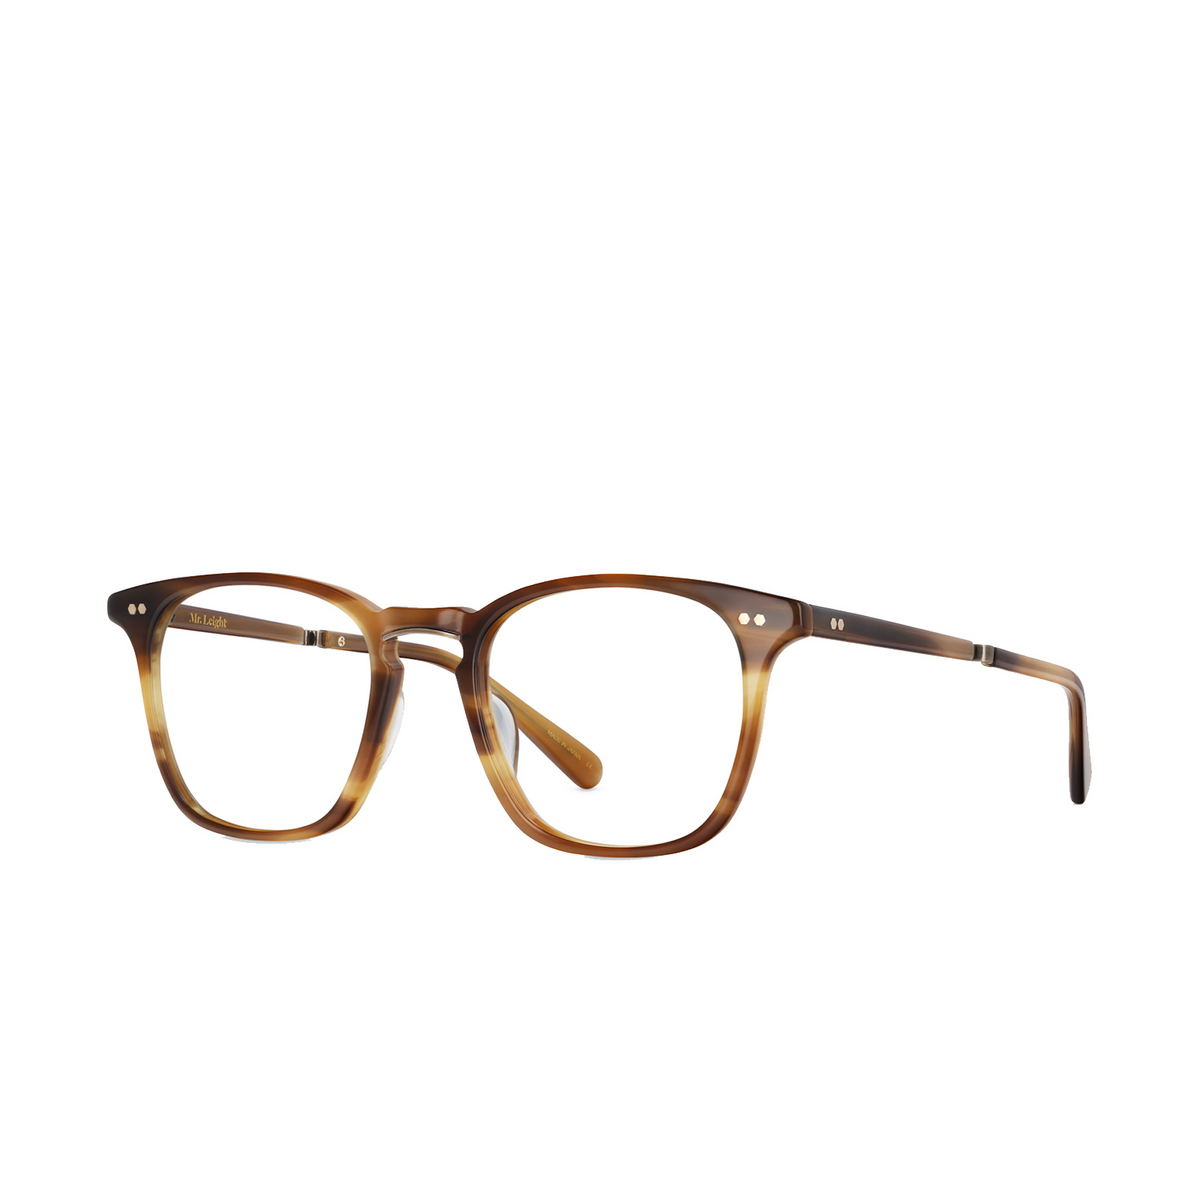 Mr. Leight® Square Eyeglasses: Getty C color Bw-atg - three-quarters view.